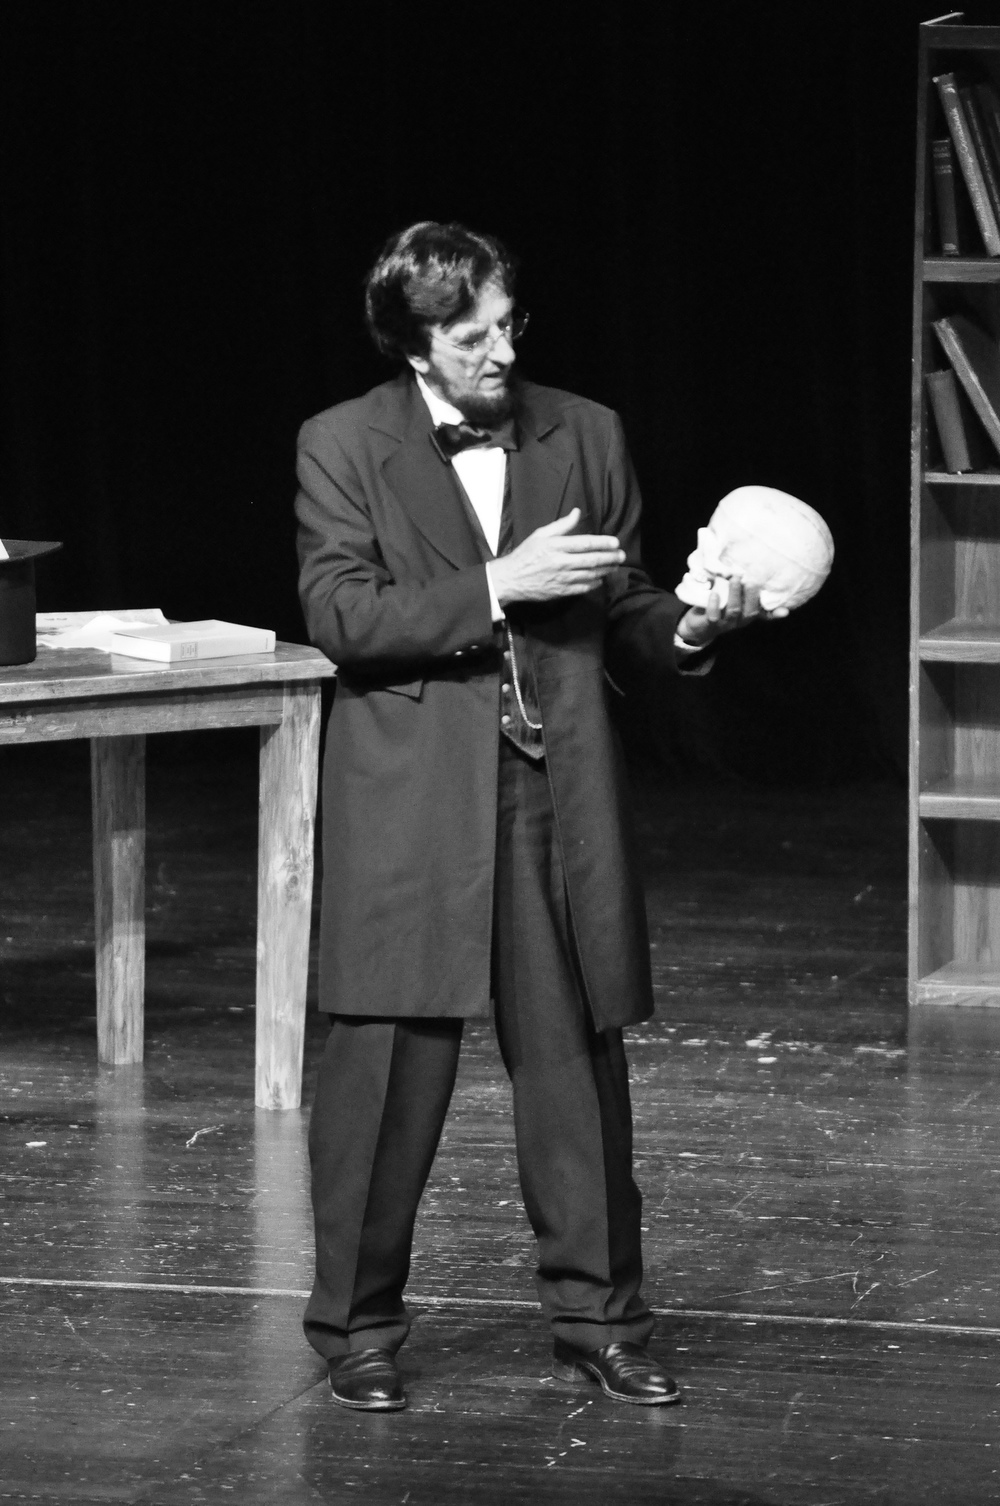 Lonn Pressnall portraying Lincoln at the Last Frontier Theatre Conference in Valdez, Alaska